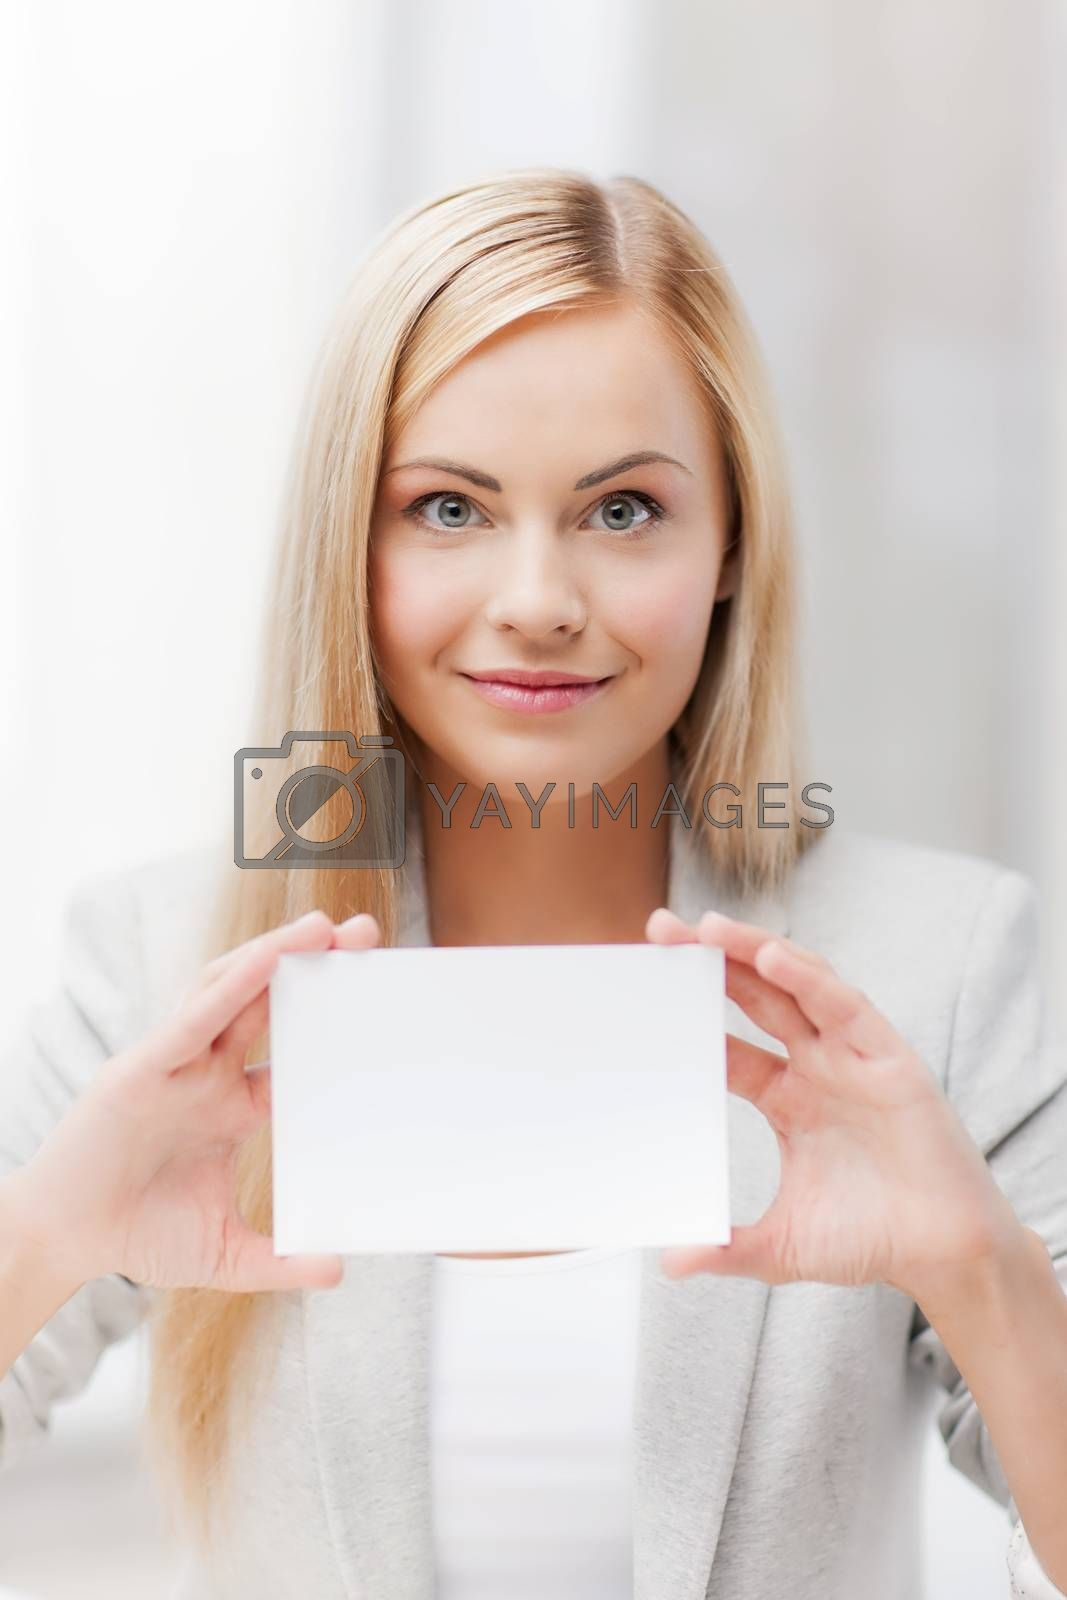 woman with blank business or name card by dolgachov